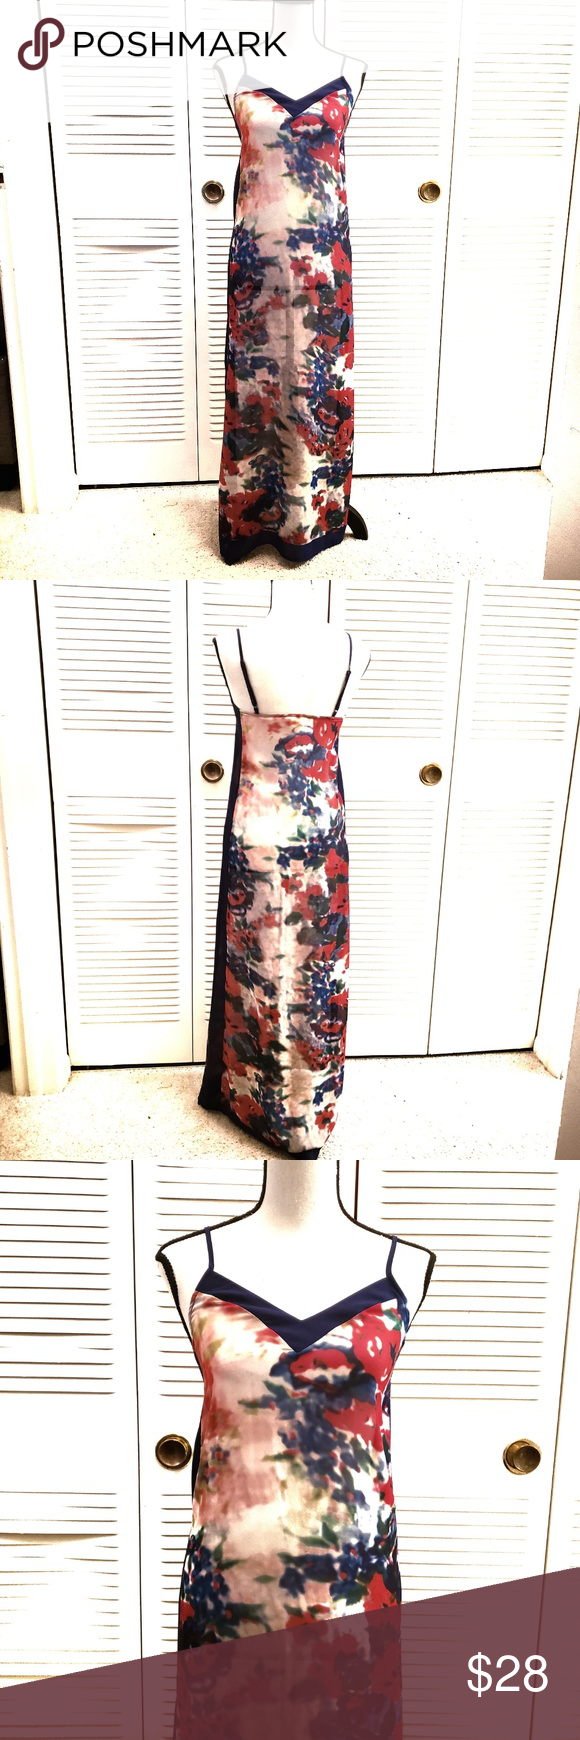 Staring At Stars Sheer Blue Red Watercolor Maxi Beautiful Sheer Staring At Stars For Urban Ou Urban Outfitters Maxi Dress White Maxi Dresses Staring At Stars [ 1740 x 580 Pixel ]